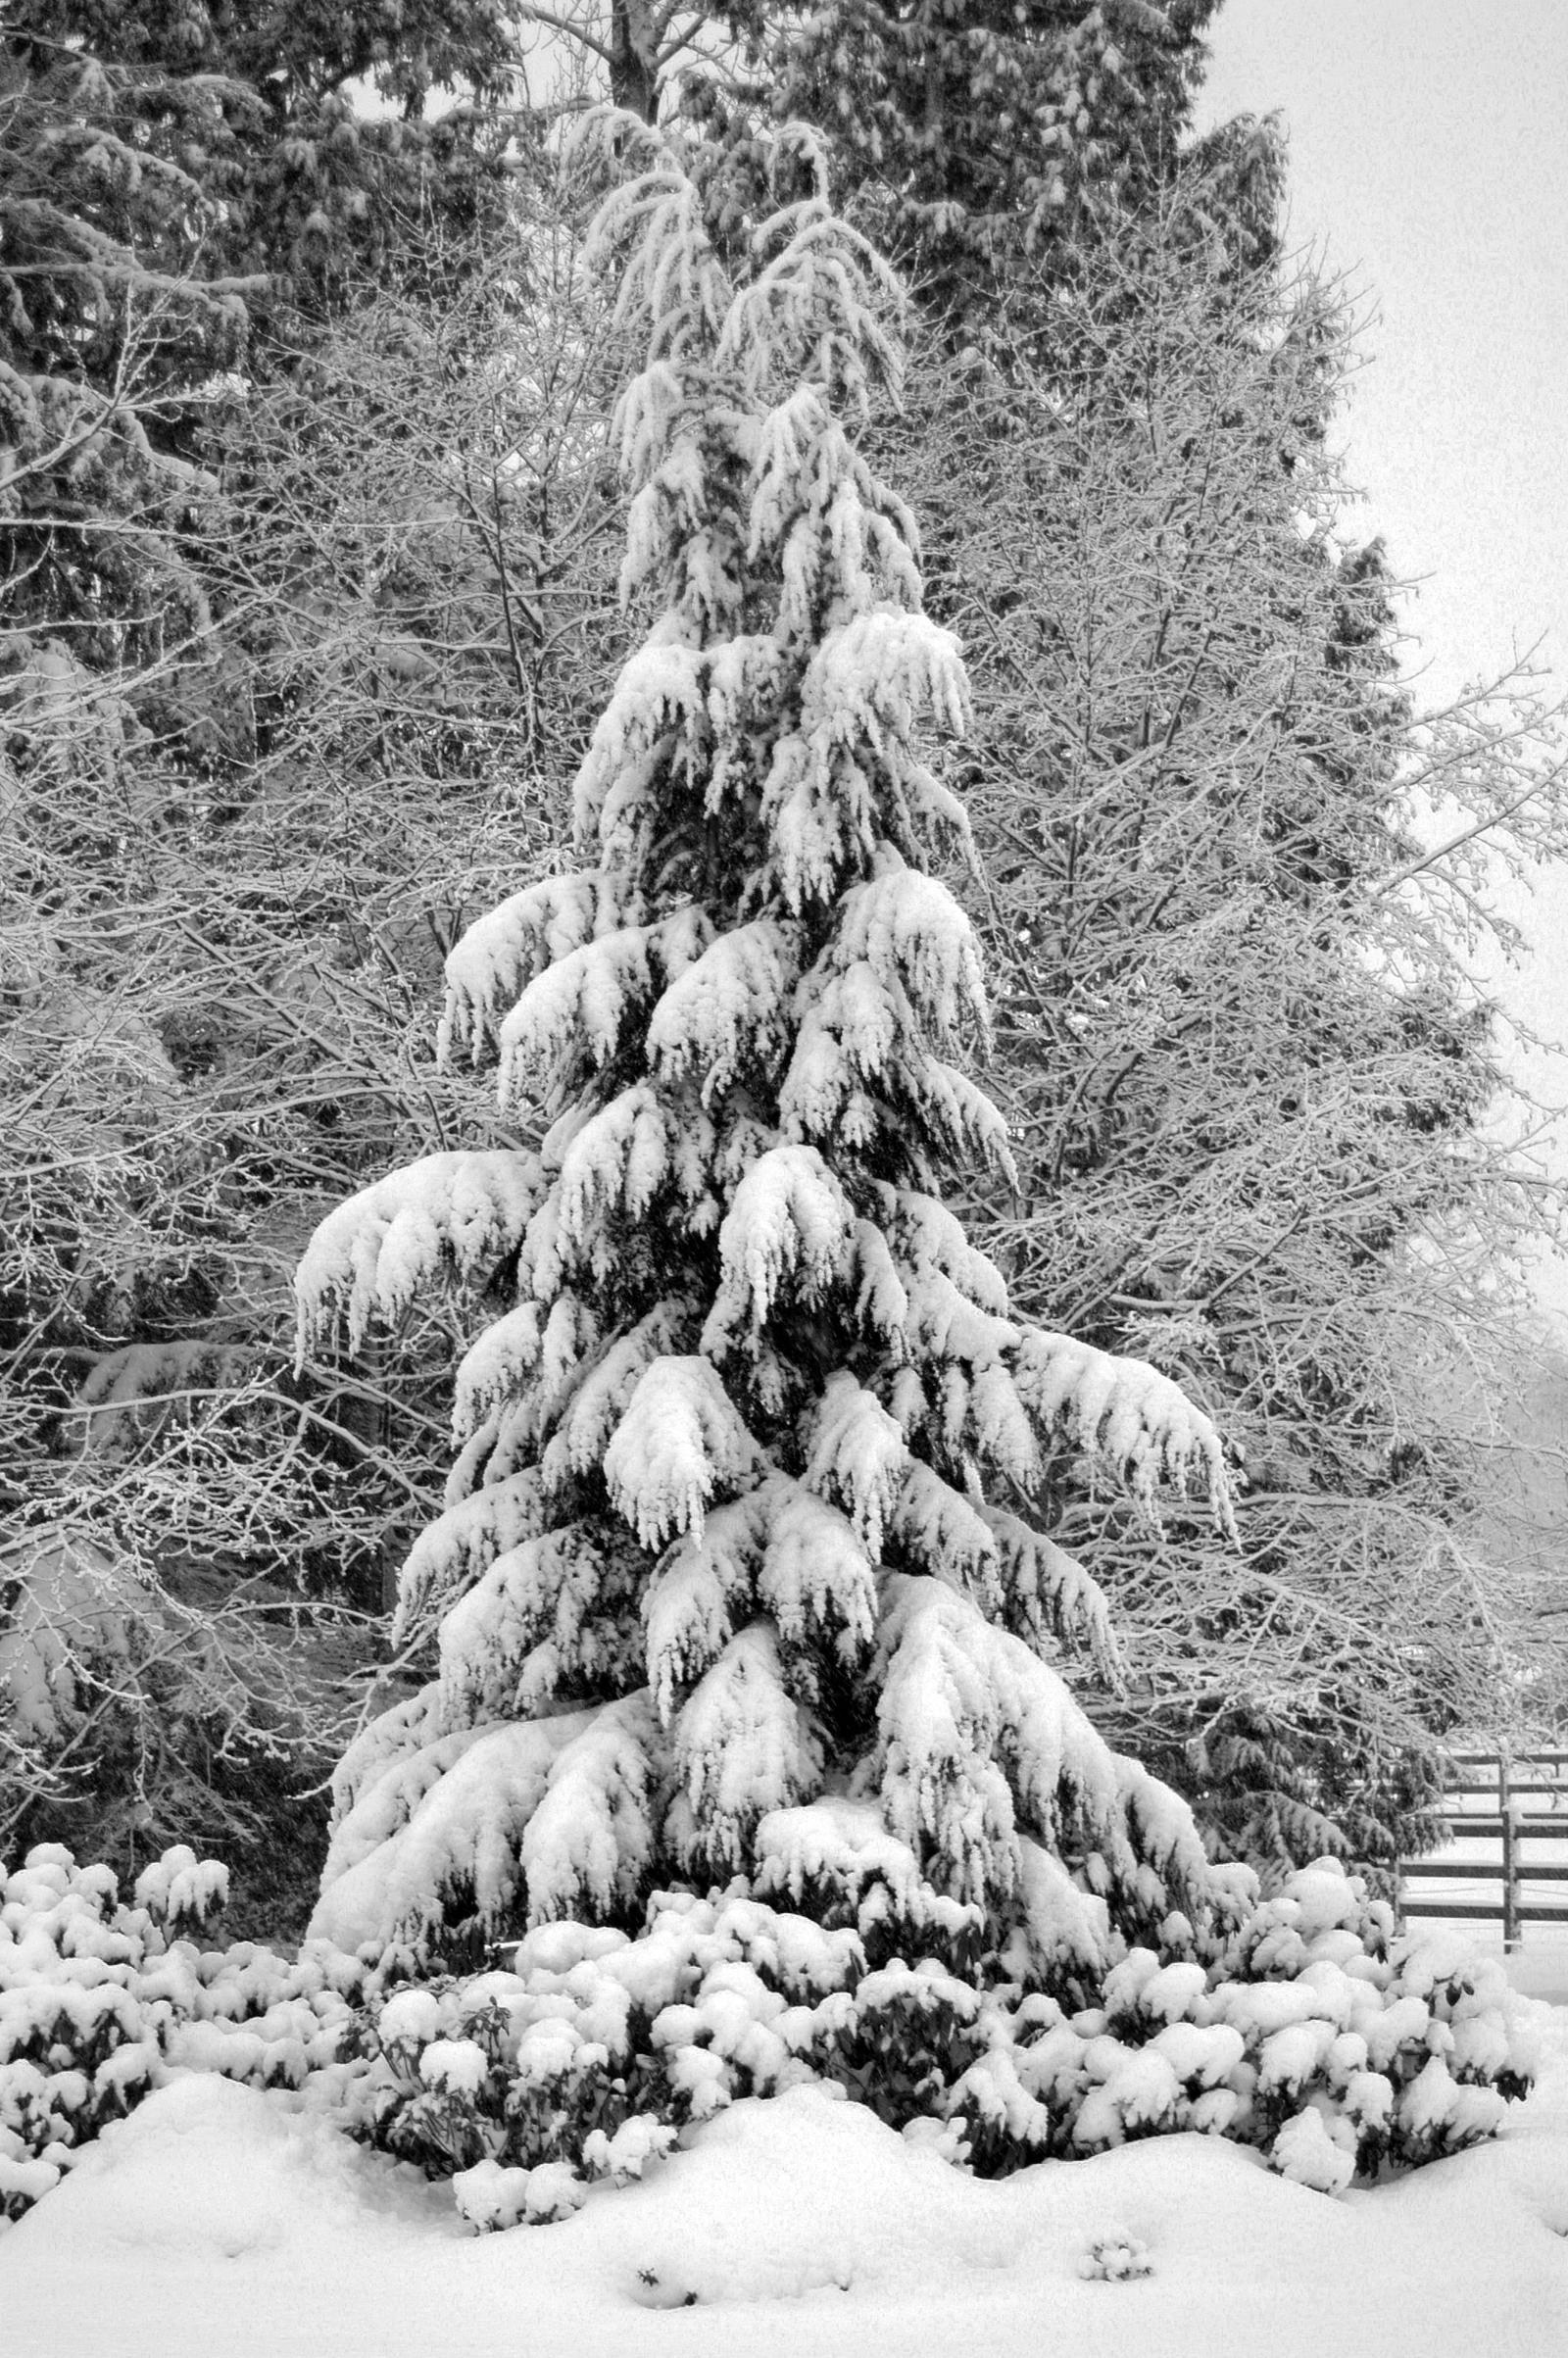 Large Snowy Evergreen Tree by MogieG123